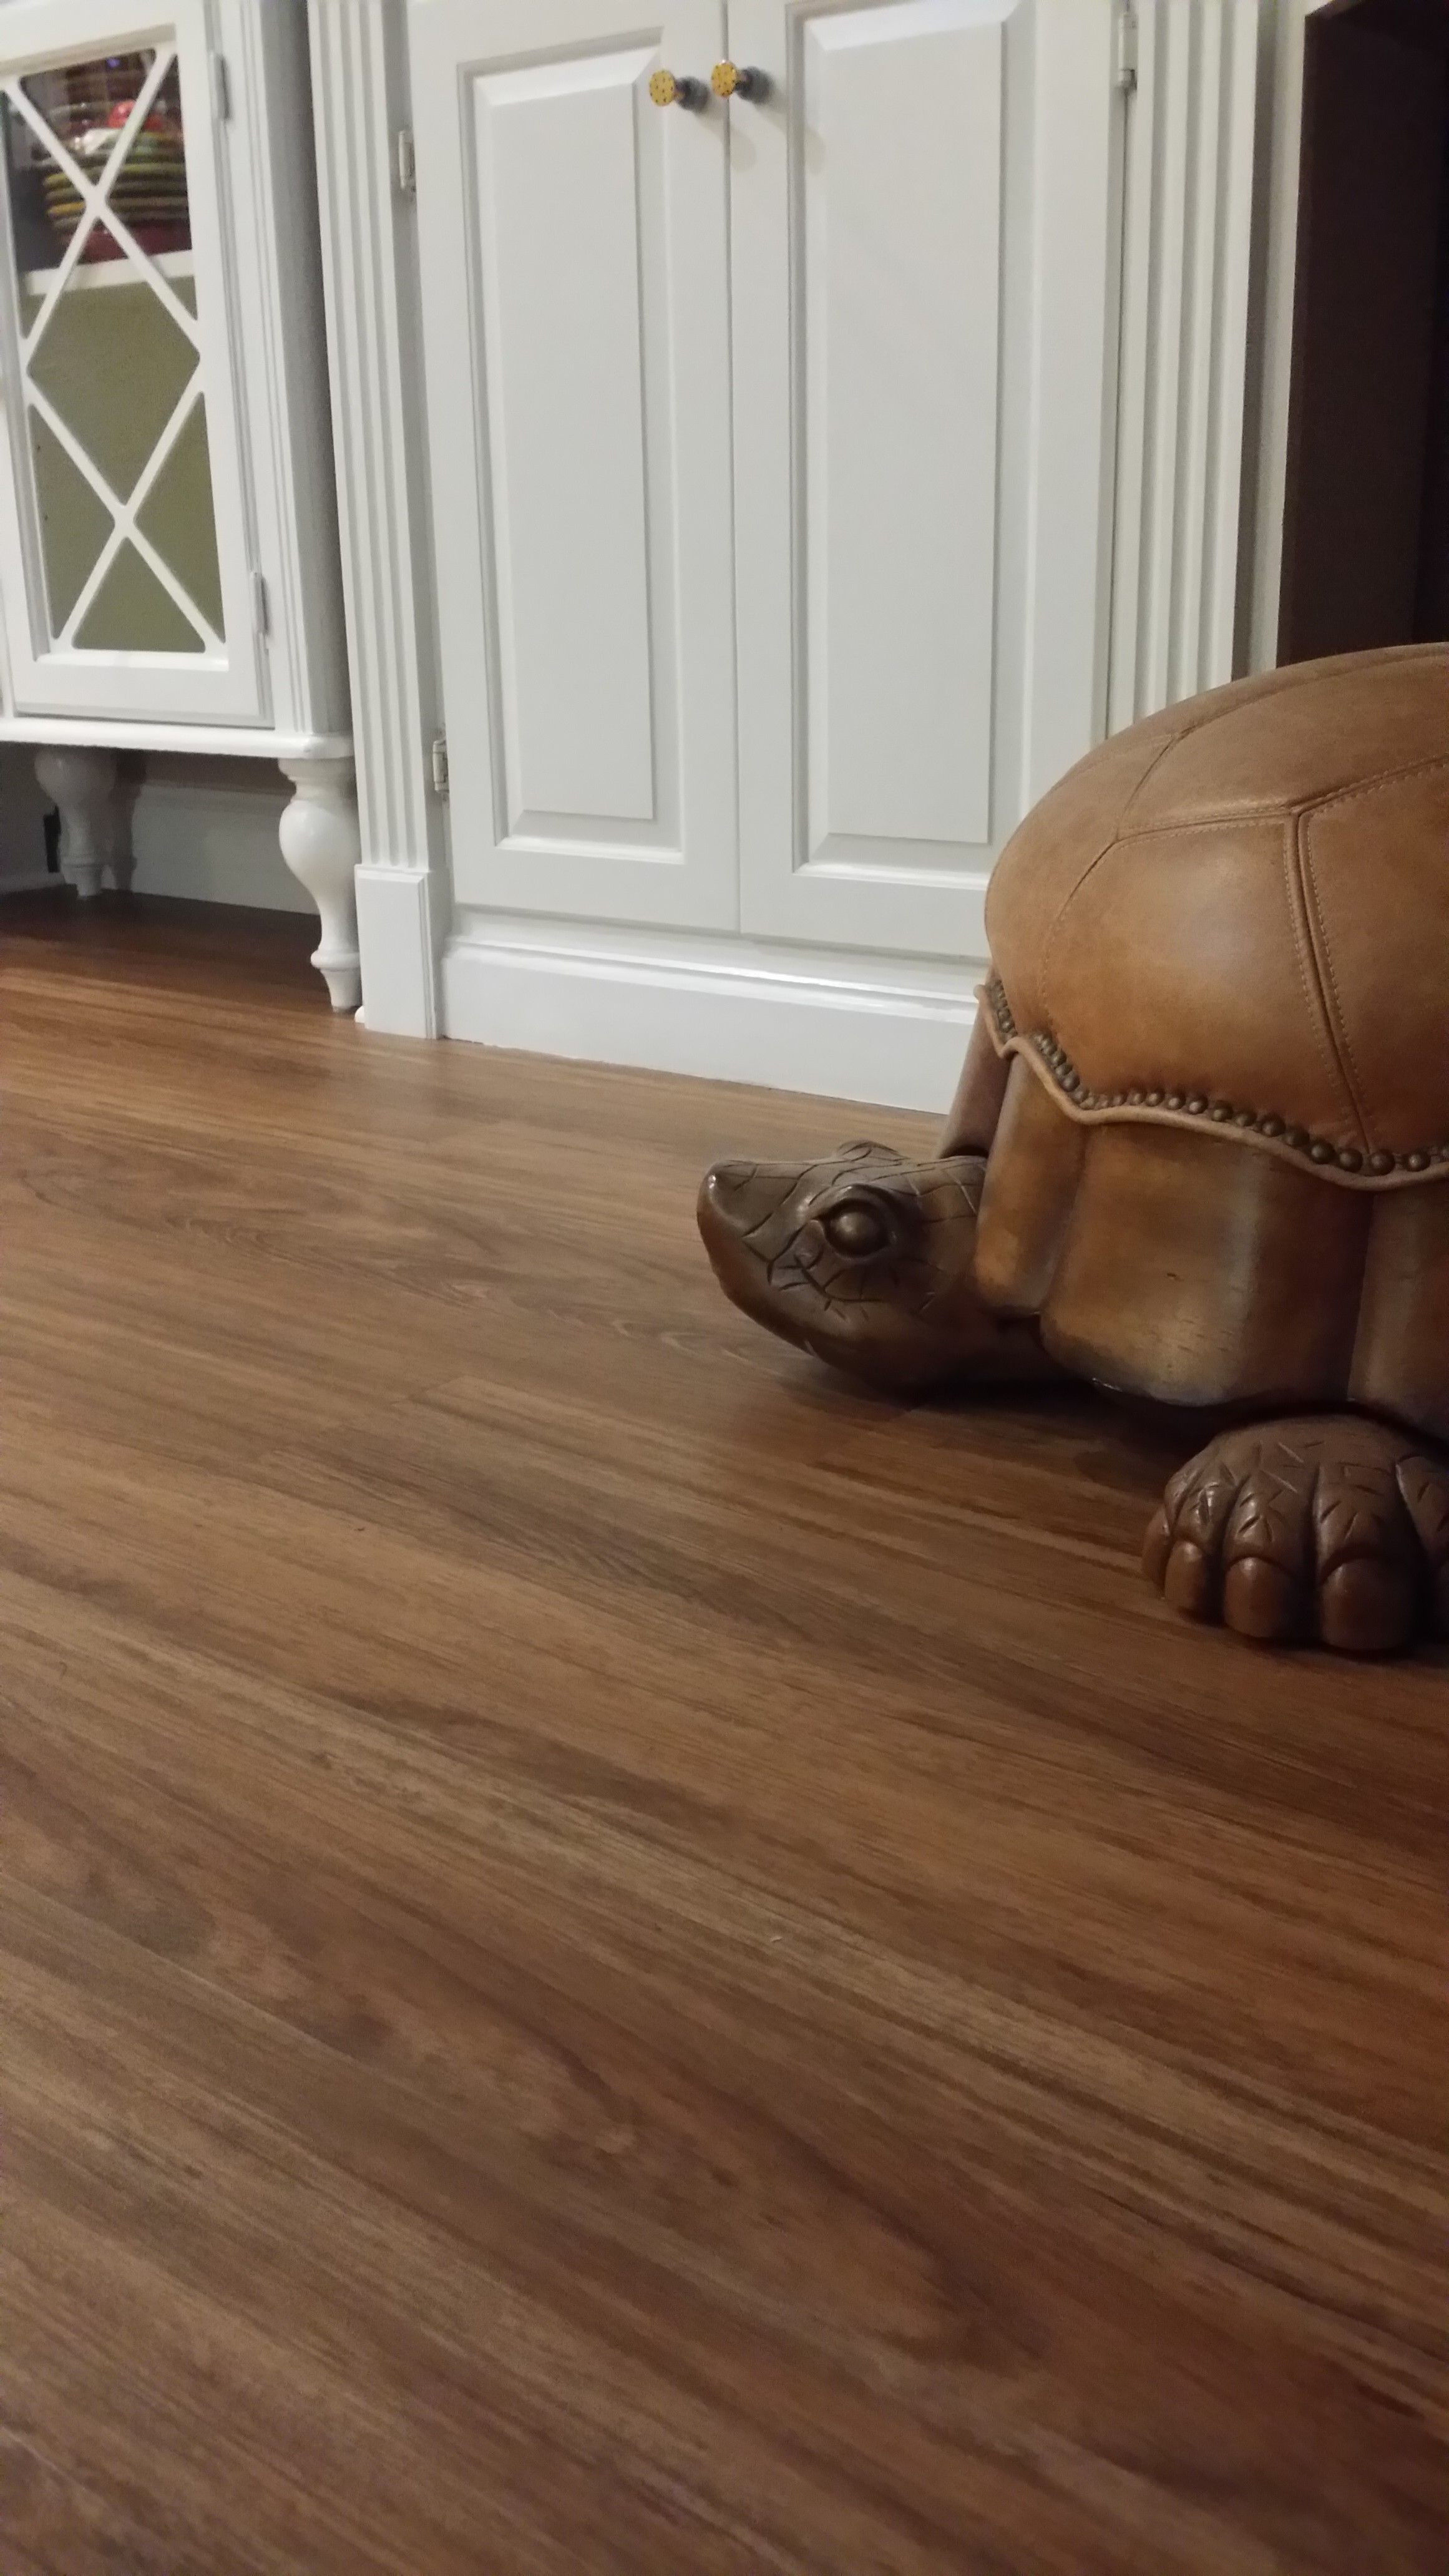 cleaning shaw engineered hardwood floors of hardwood floor refinishing richmond va new engineered vinyl plank within hardwood floor refinishing richmond va new engineered vinyl plank flooring called classico teak from shaw